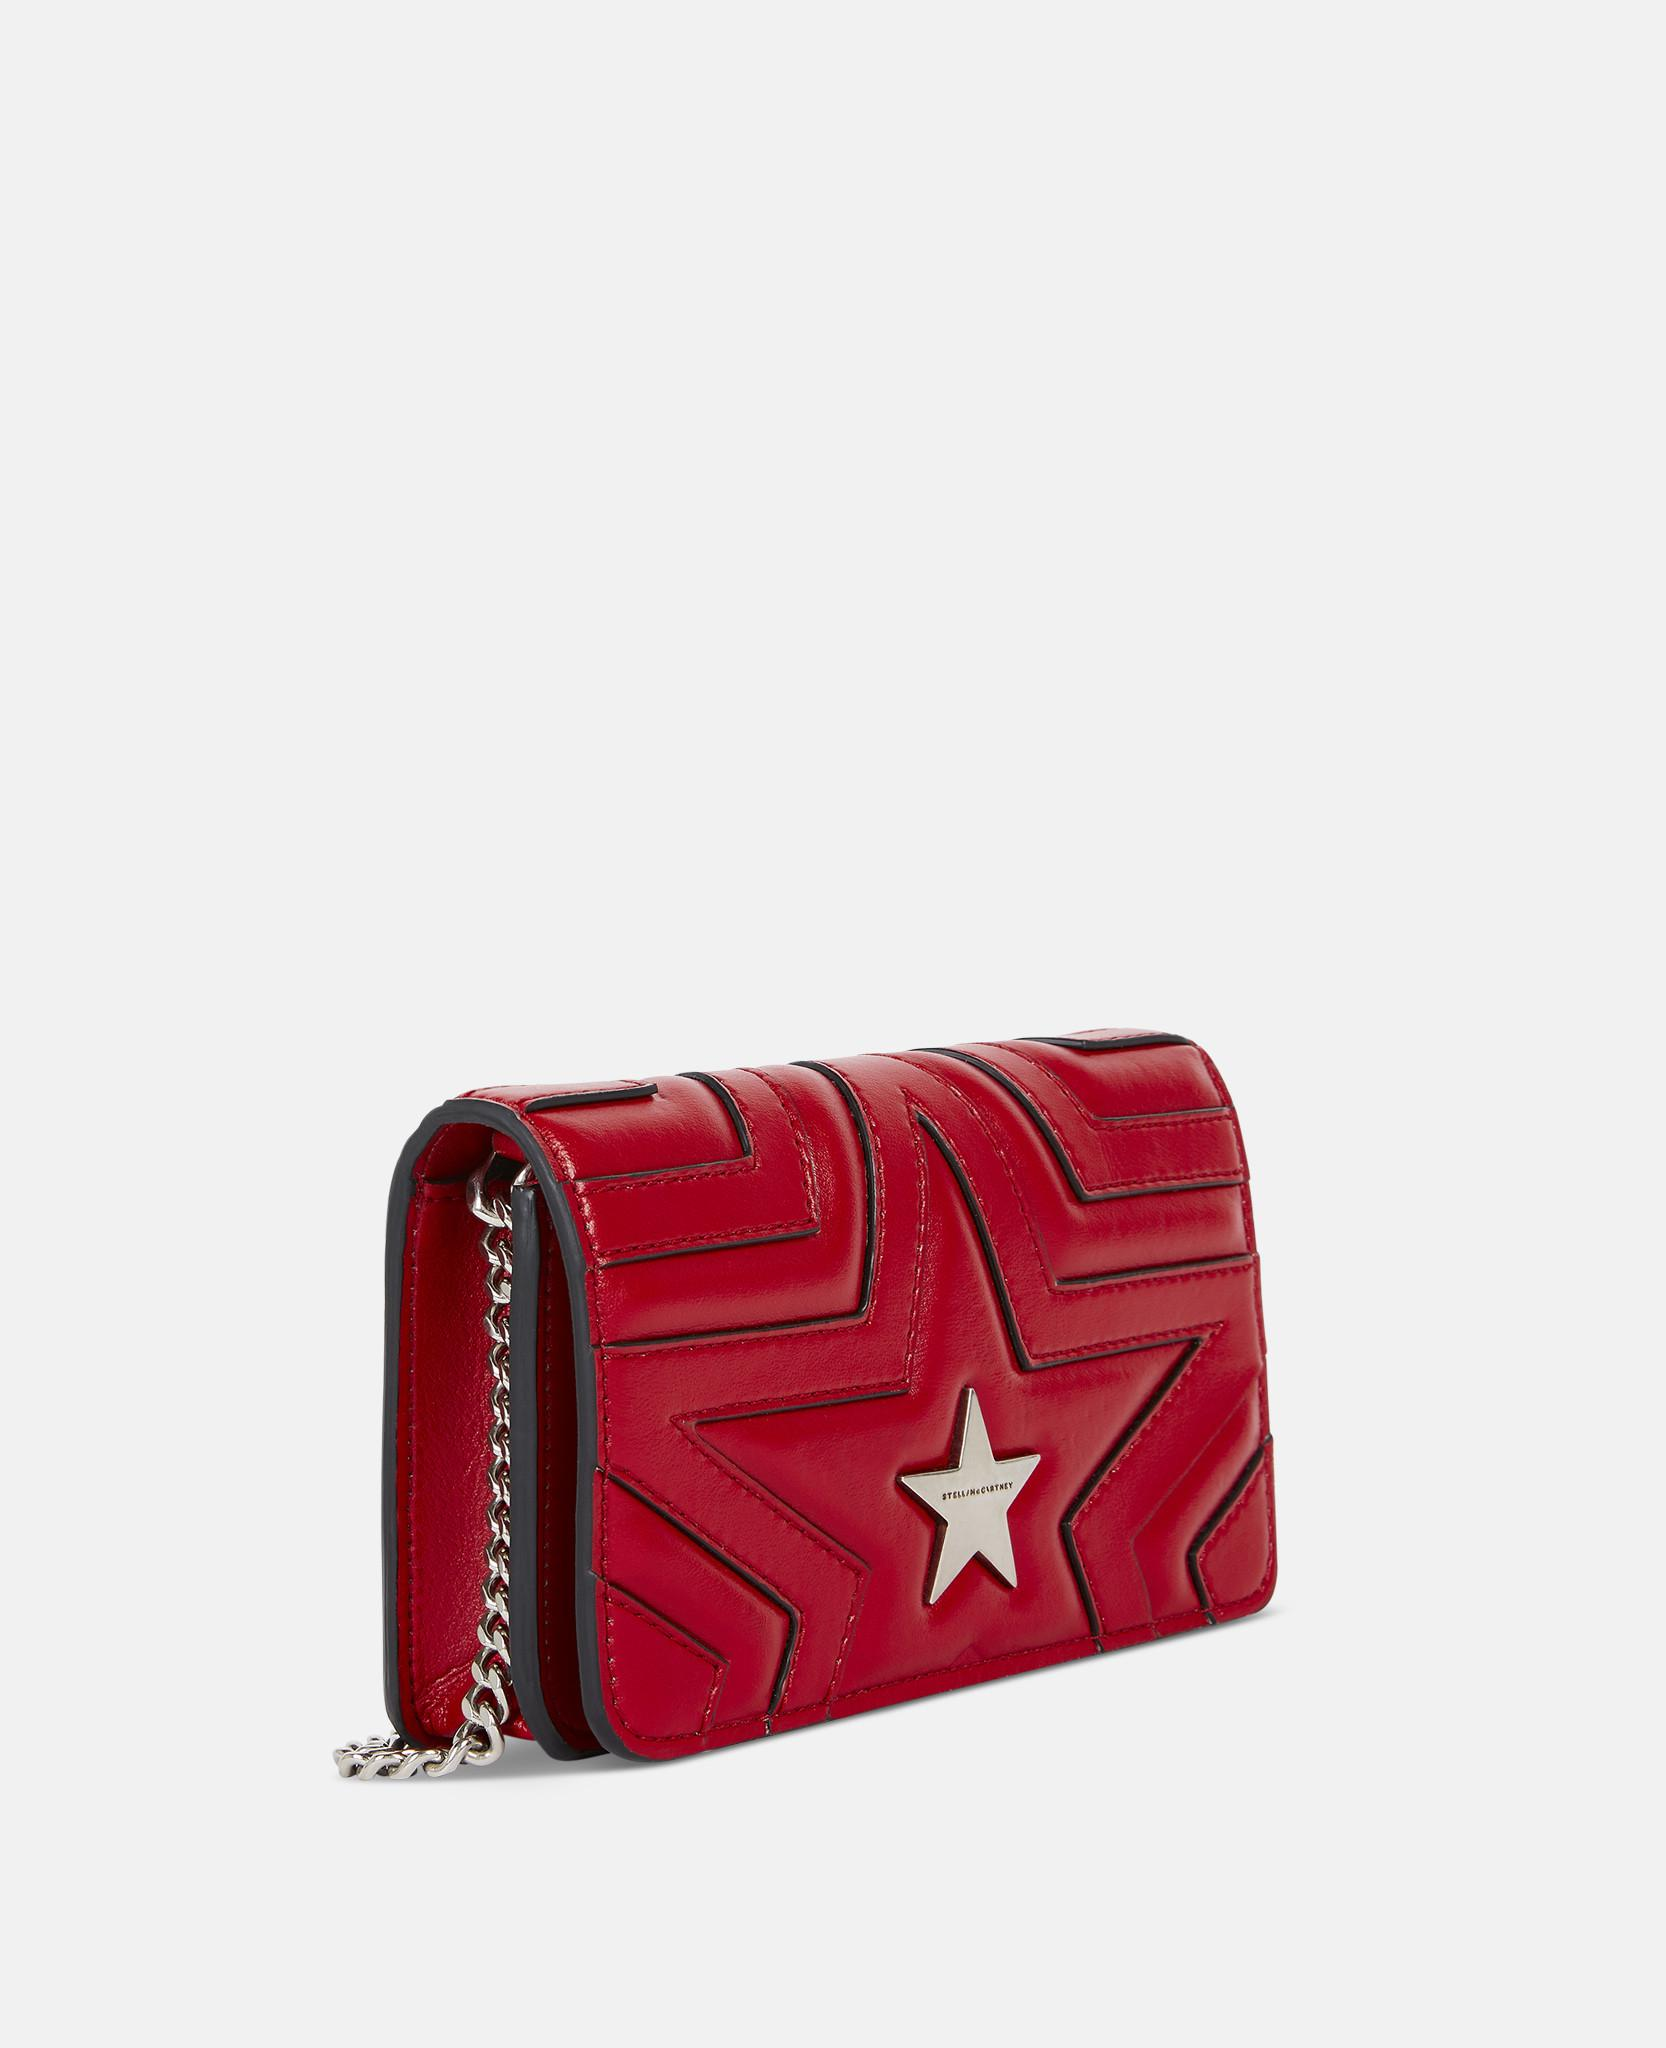 Lyst - Stella McCartney Stella Star Small Flap-over Shoulder Bag in Red -  Save 30% 2e18d40c0352f